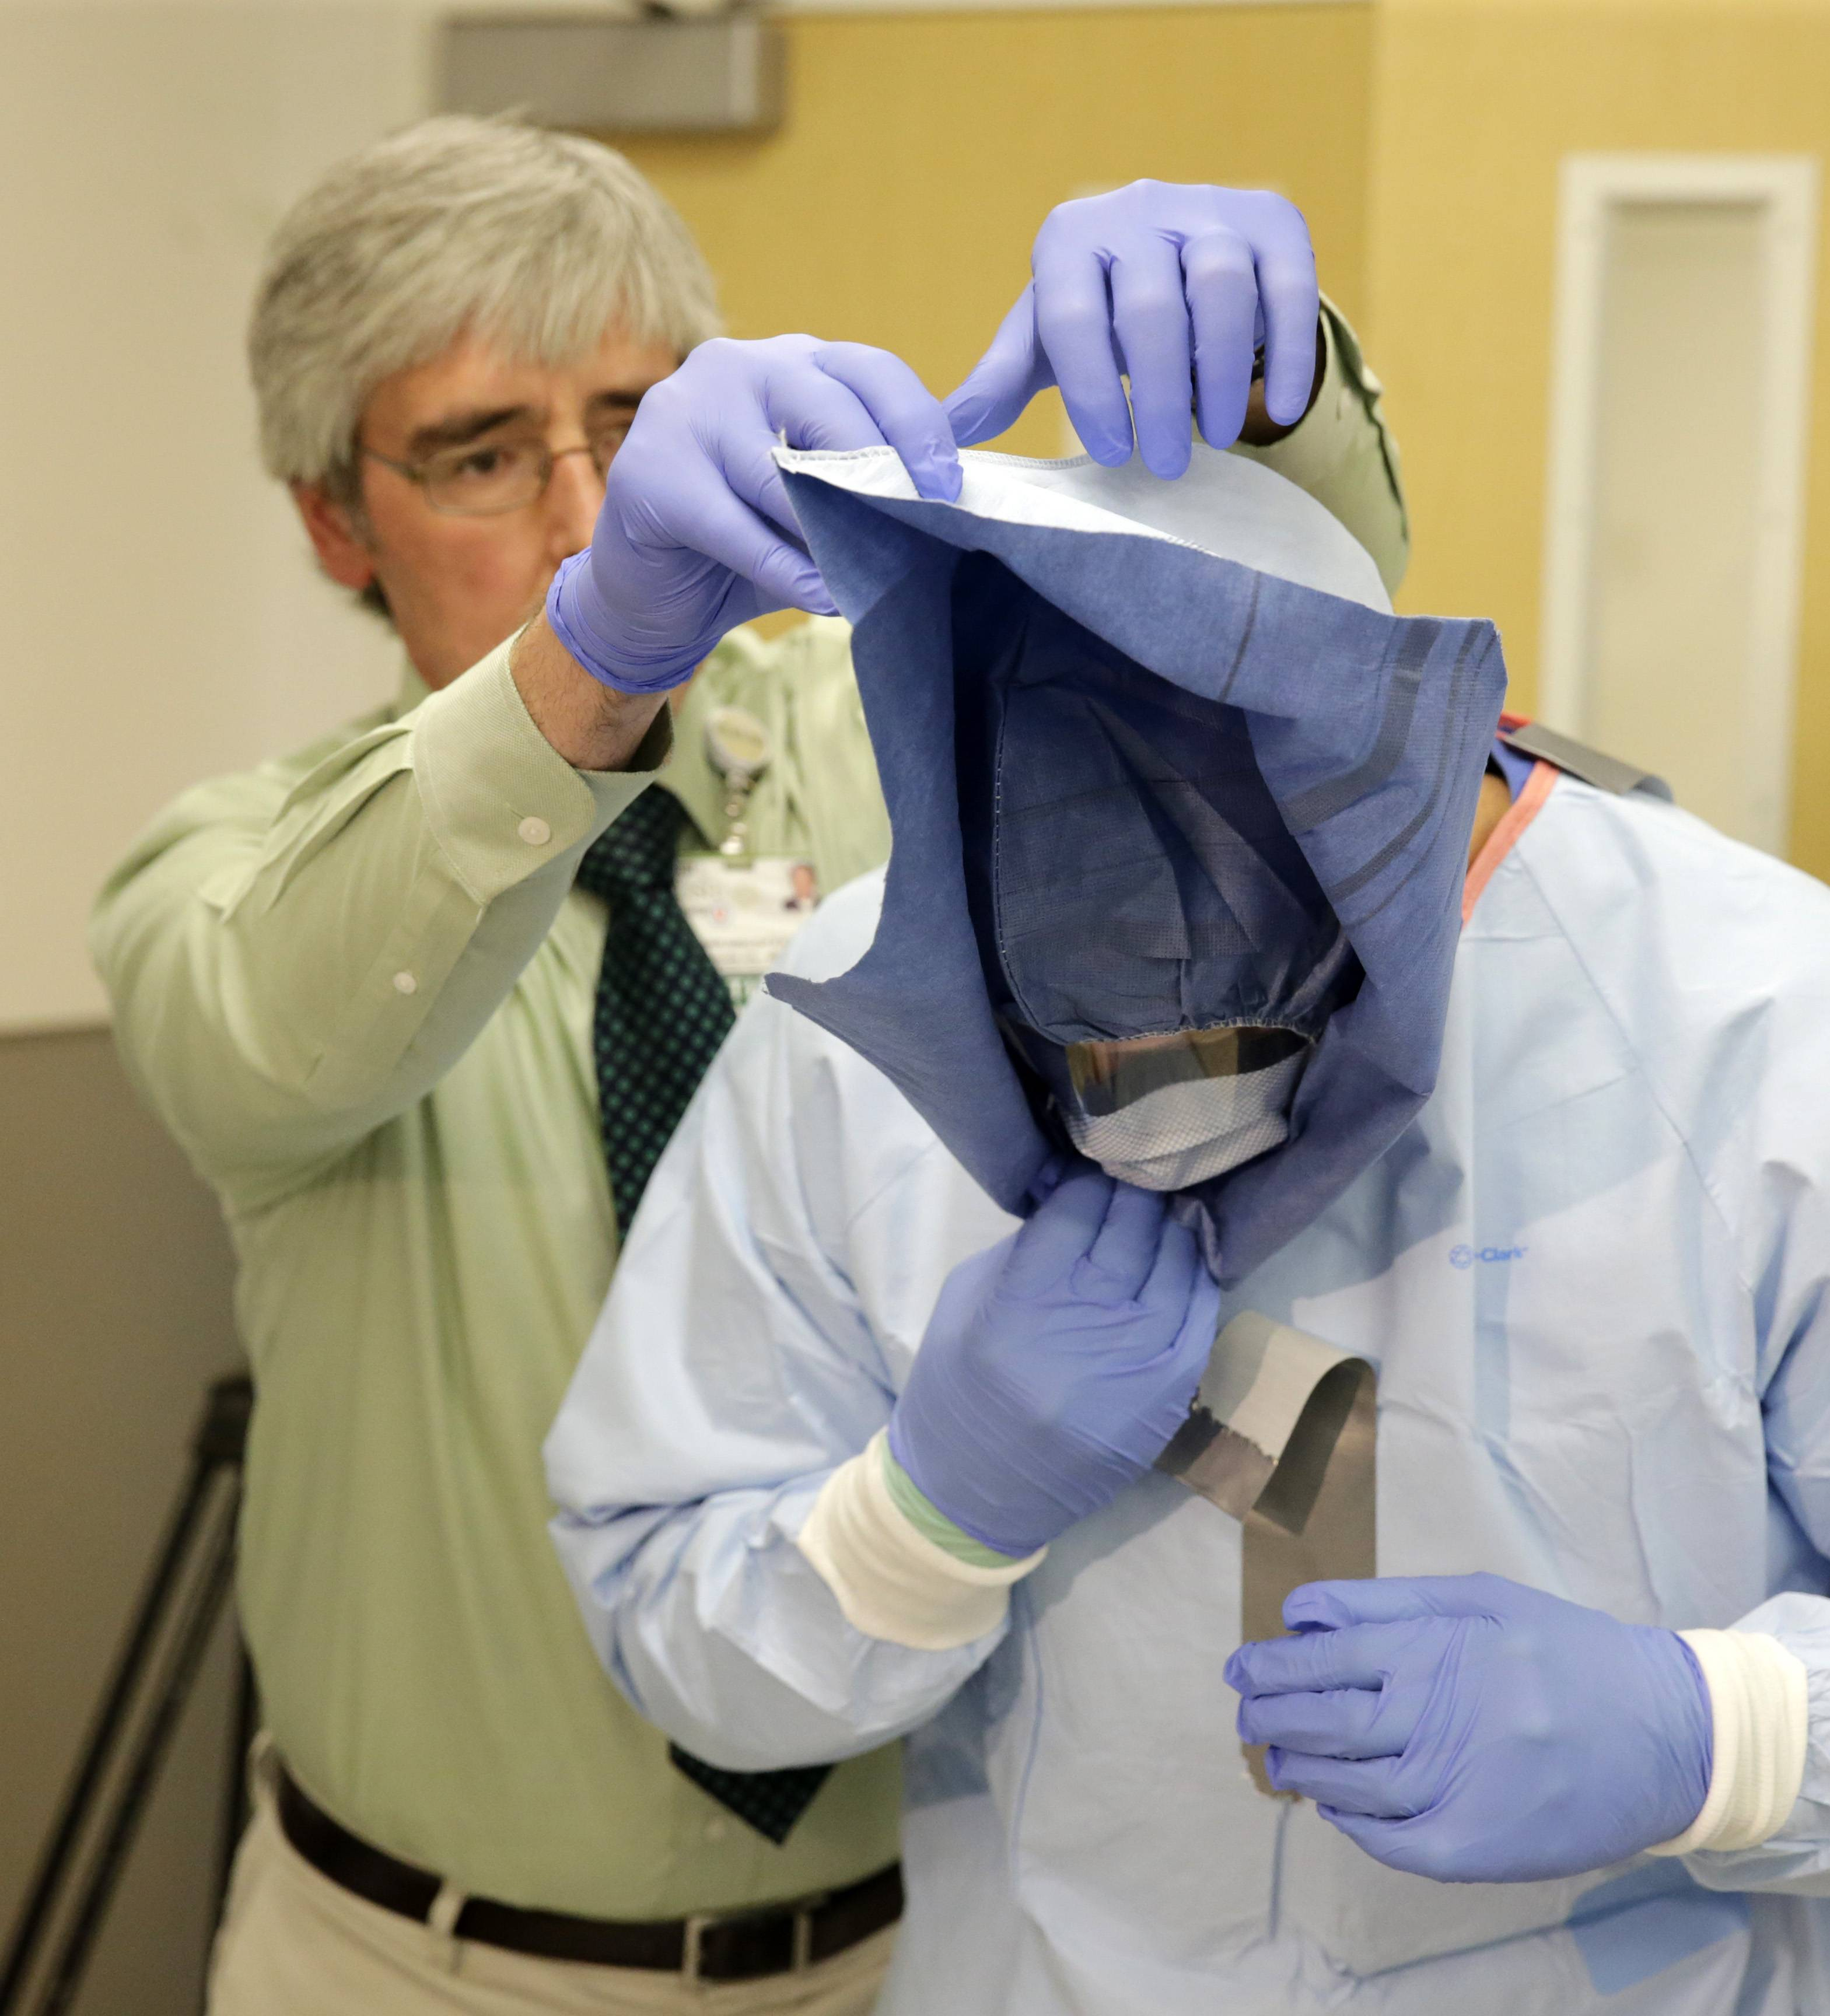 Child being observed for Ebola symptoms